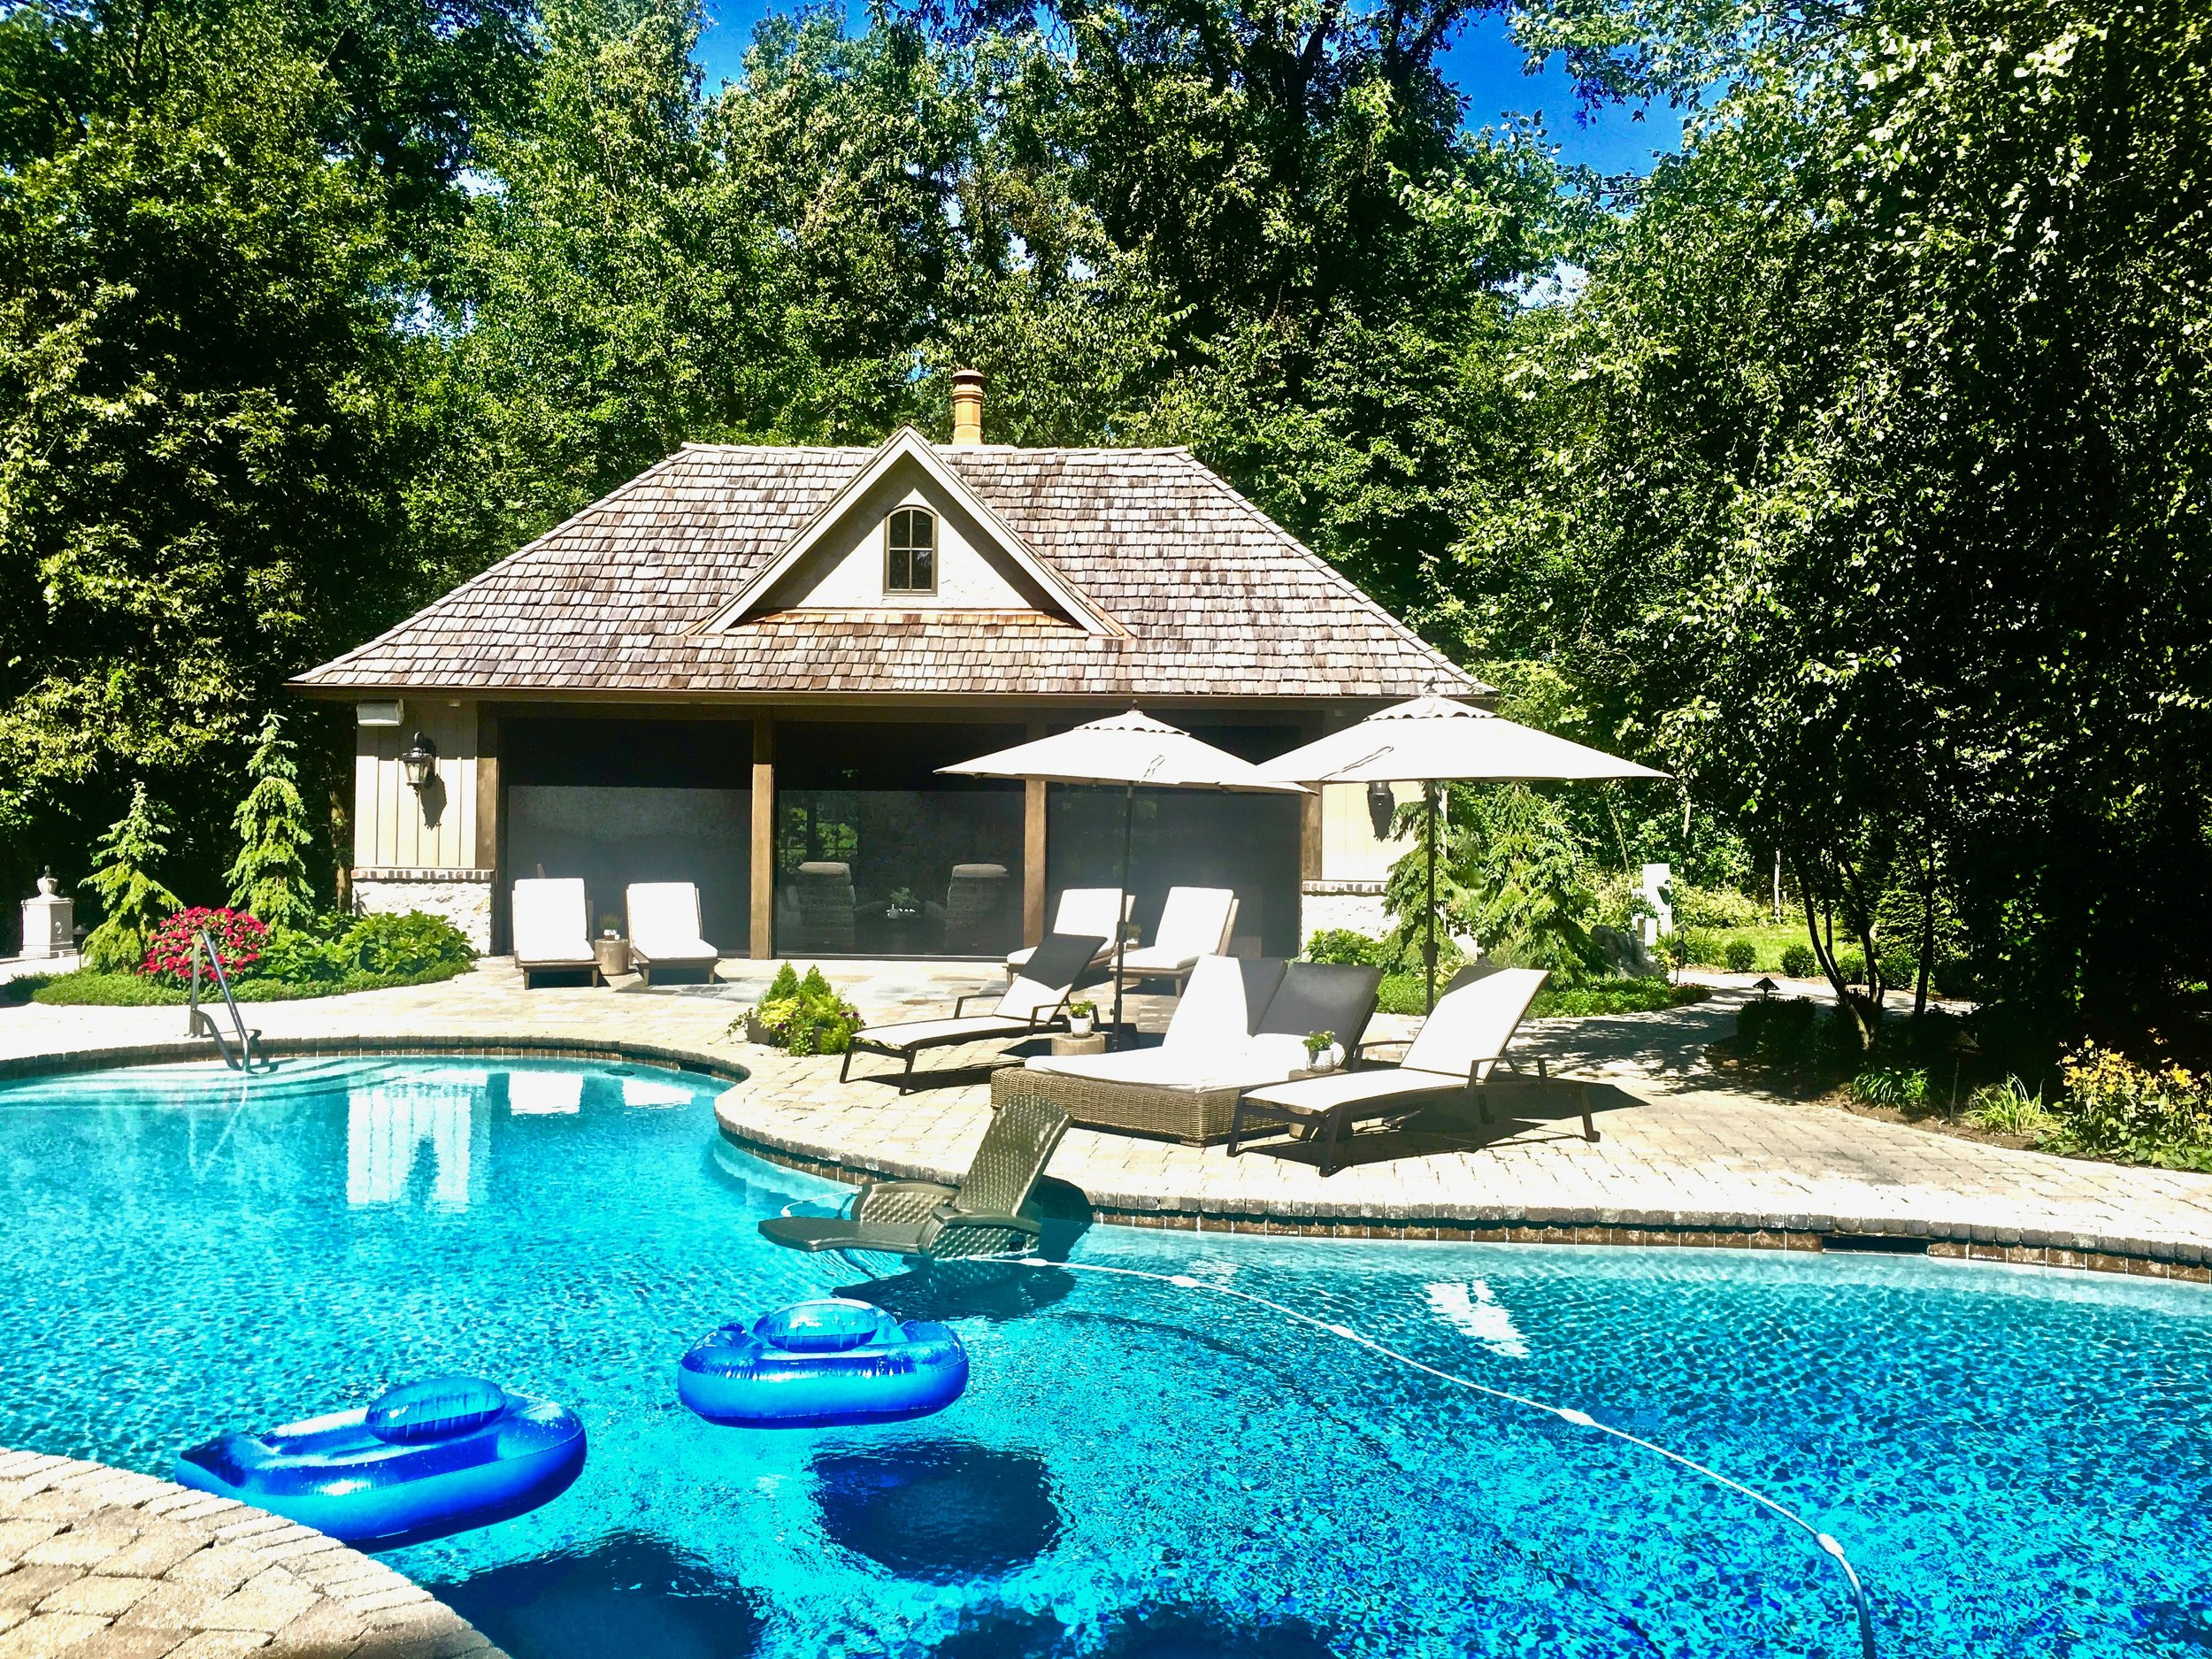 Custom Pool House to Match Main House, French Country Style Stucco Exterior